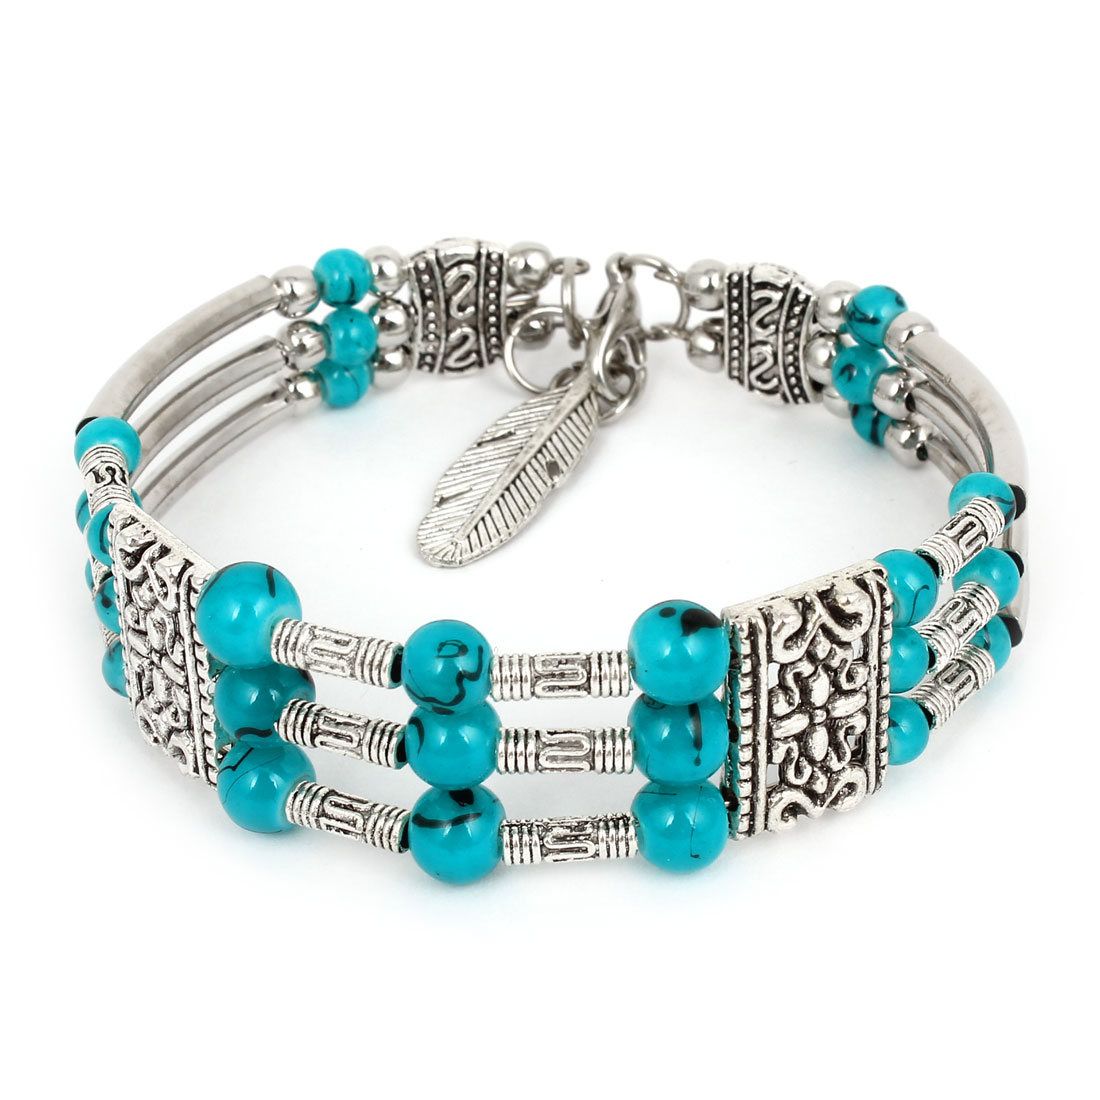 Teal Plastic Beads Accent Silver Tone Metal Chain Wrist Bangle Bracelet for Women